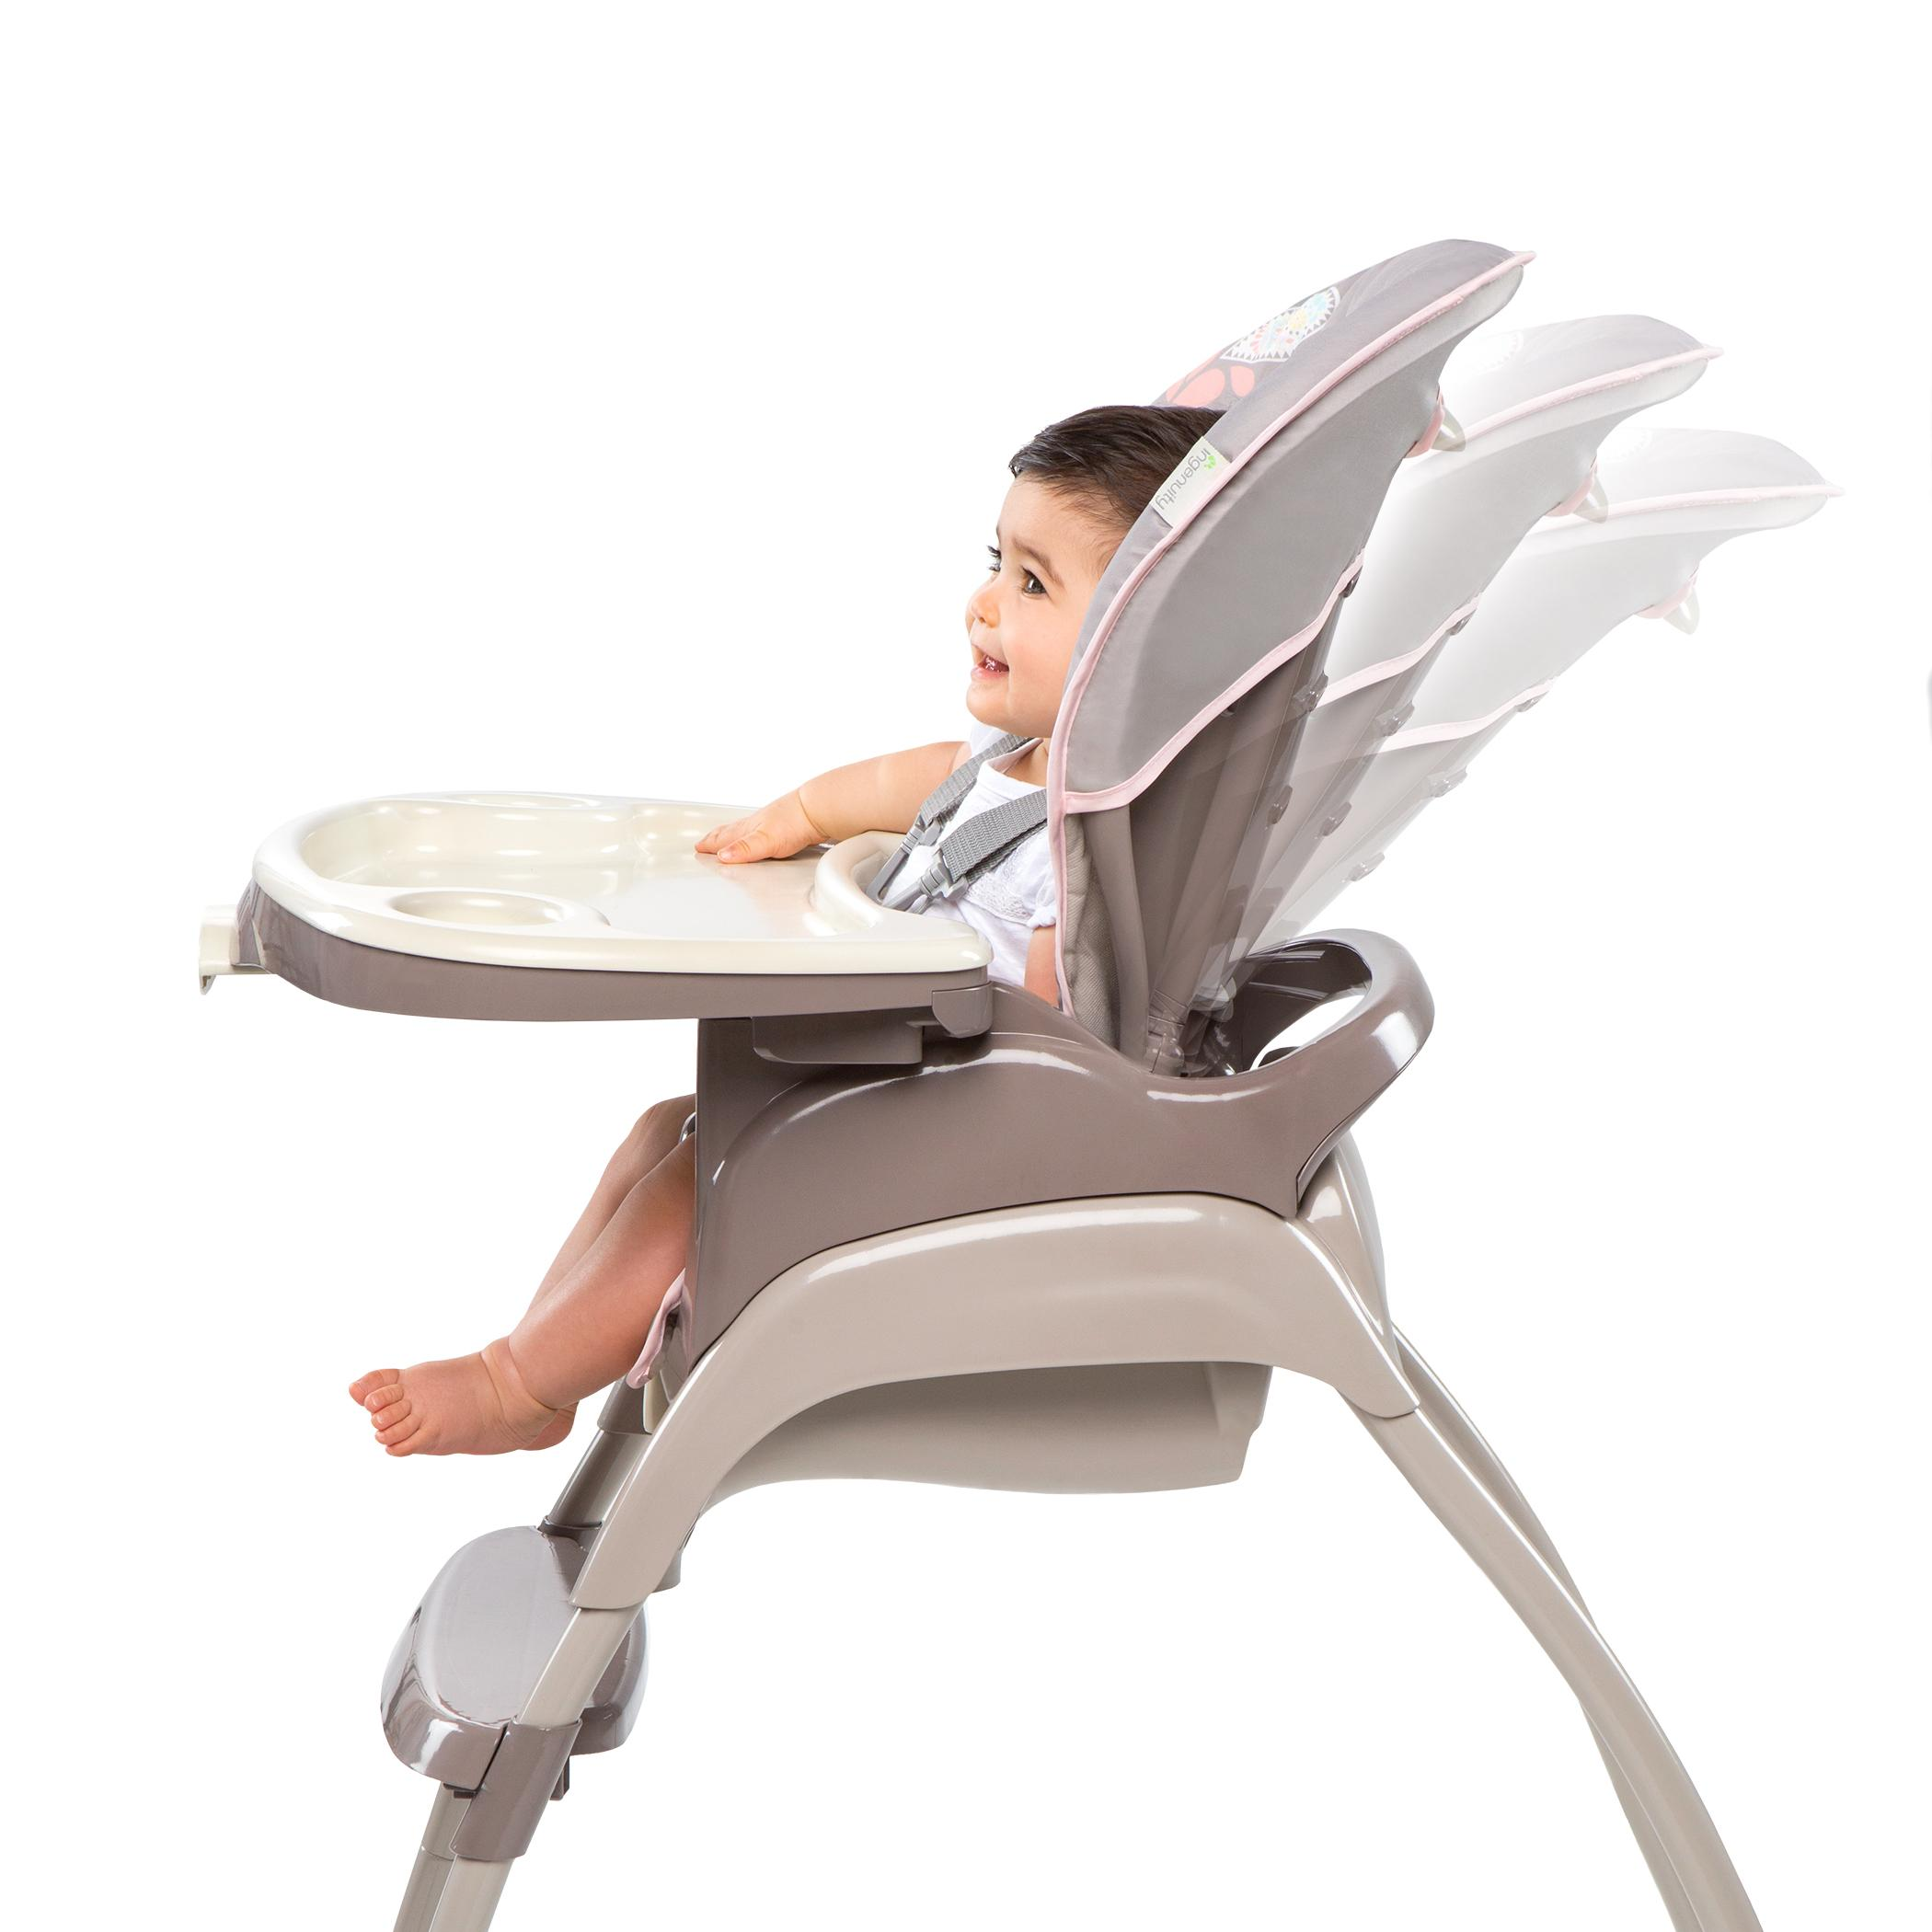 ingenuity high chair canada reviews cedar adirondack chairs michigan safety harness for zip lines kids get free image about